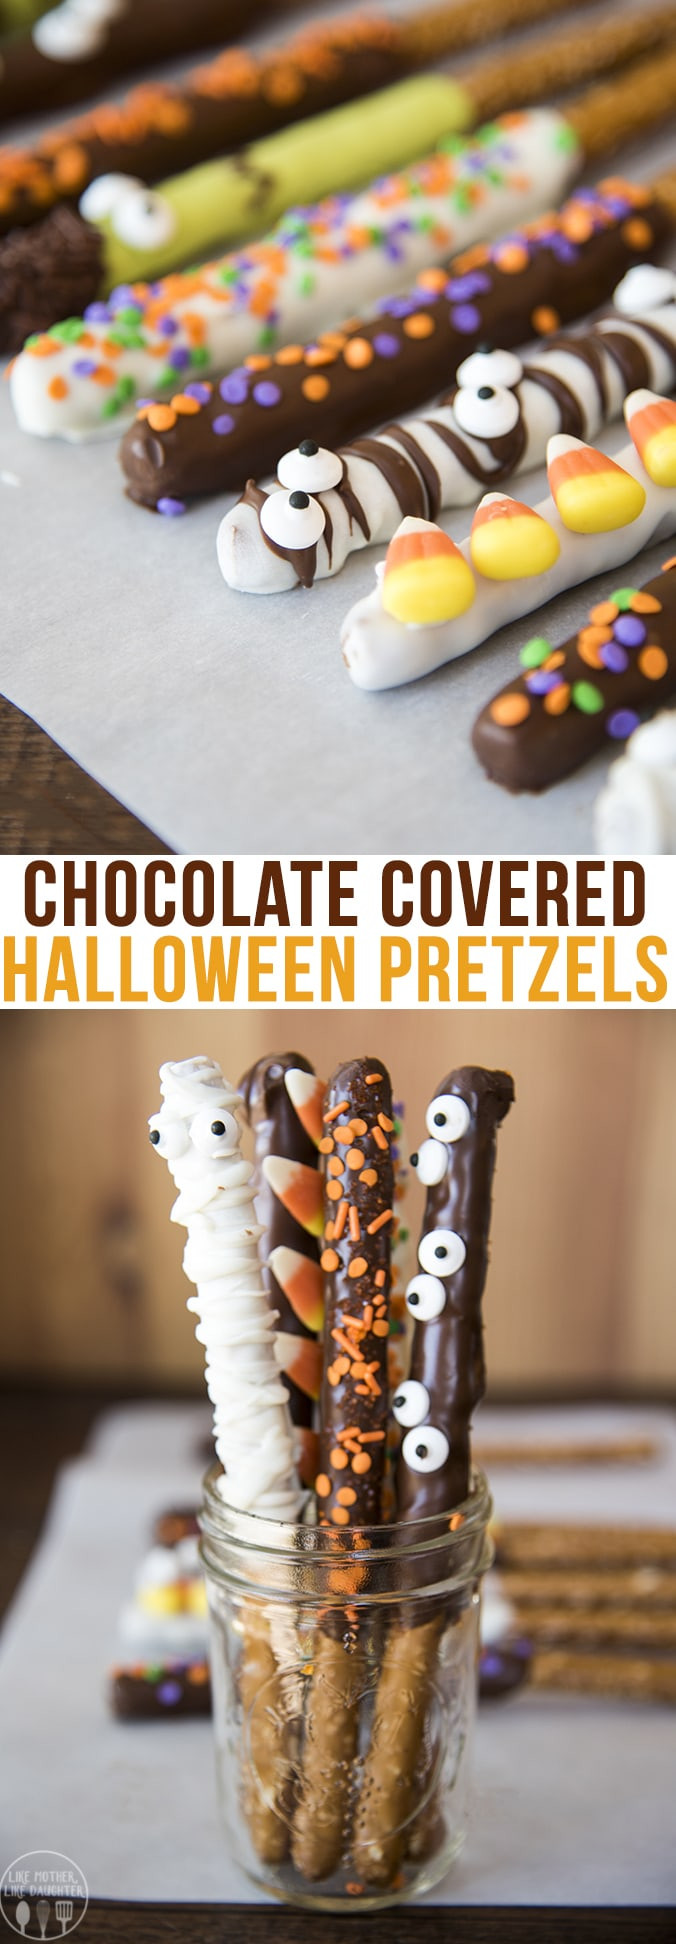 Chocolate Dipped Pretzels For Halloween  Chocolate Covered Halloween Pretzels – Like Mother Like